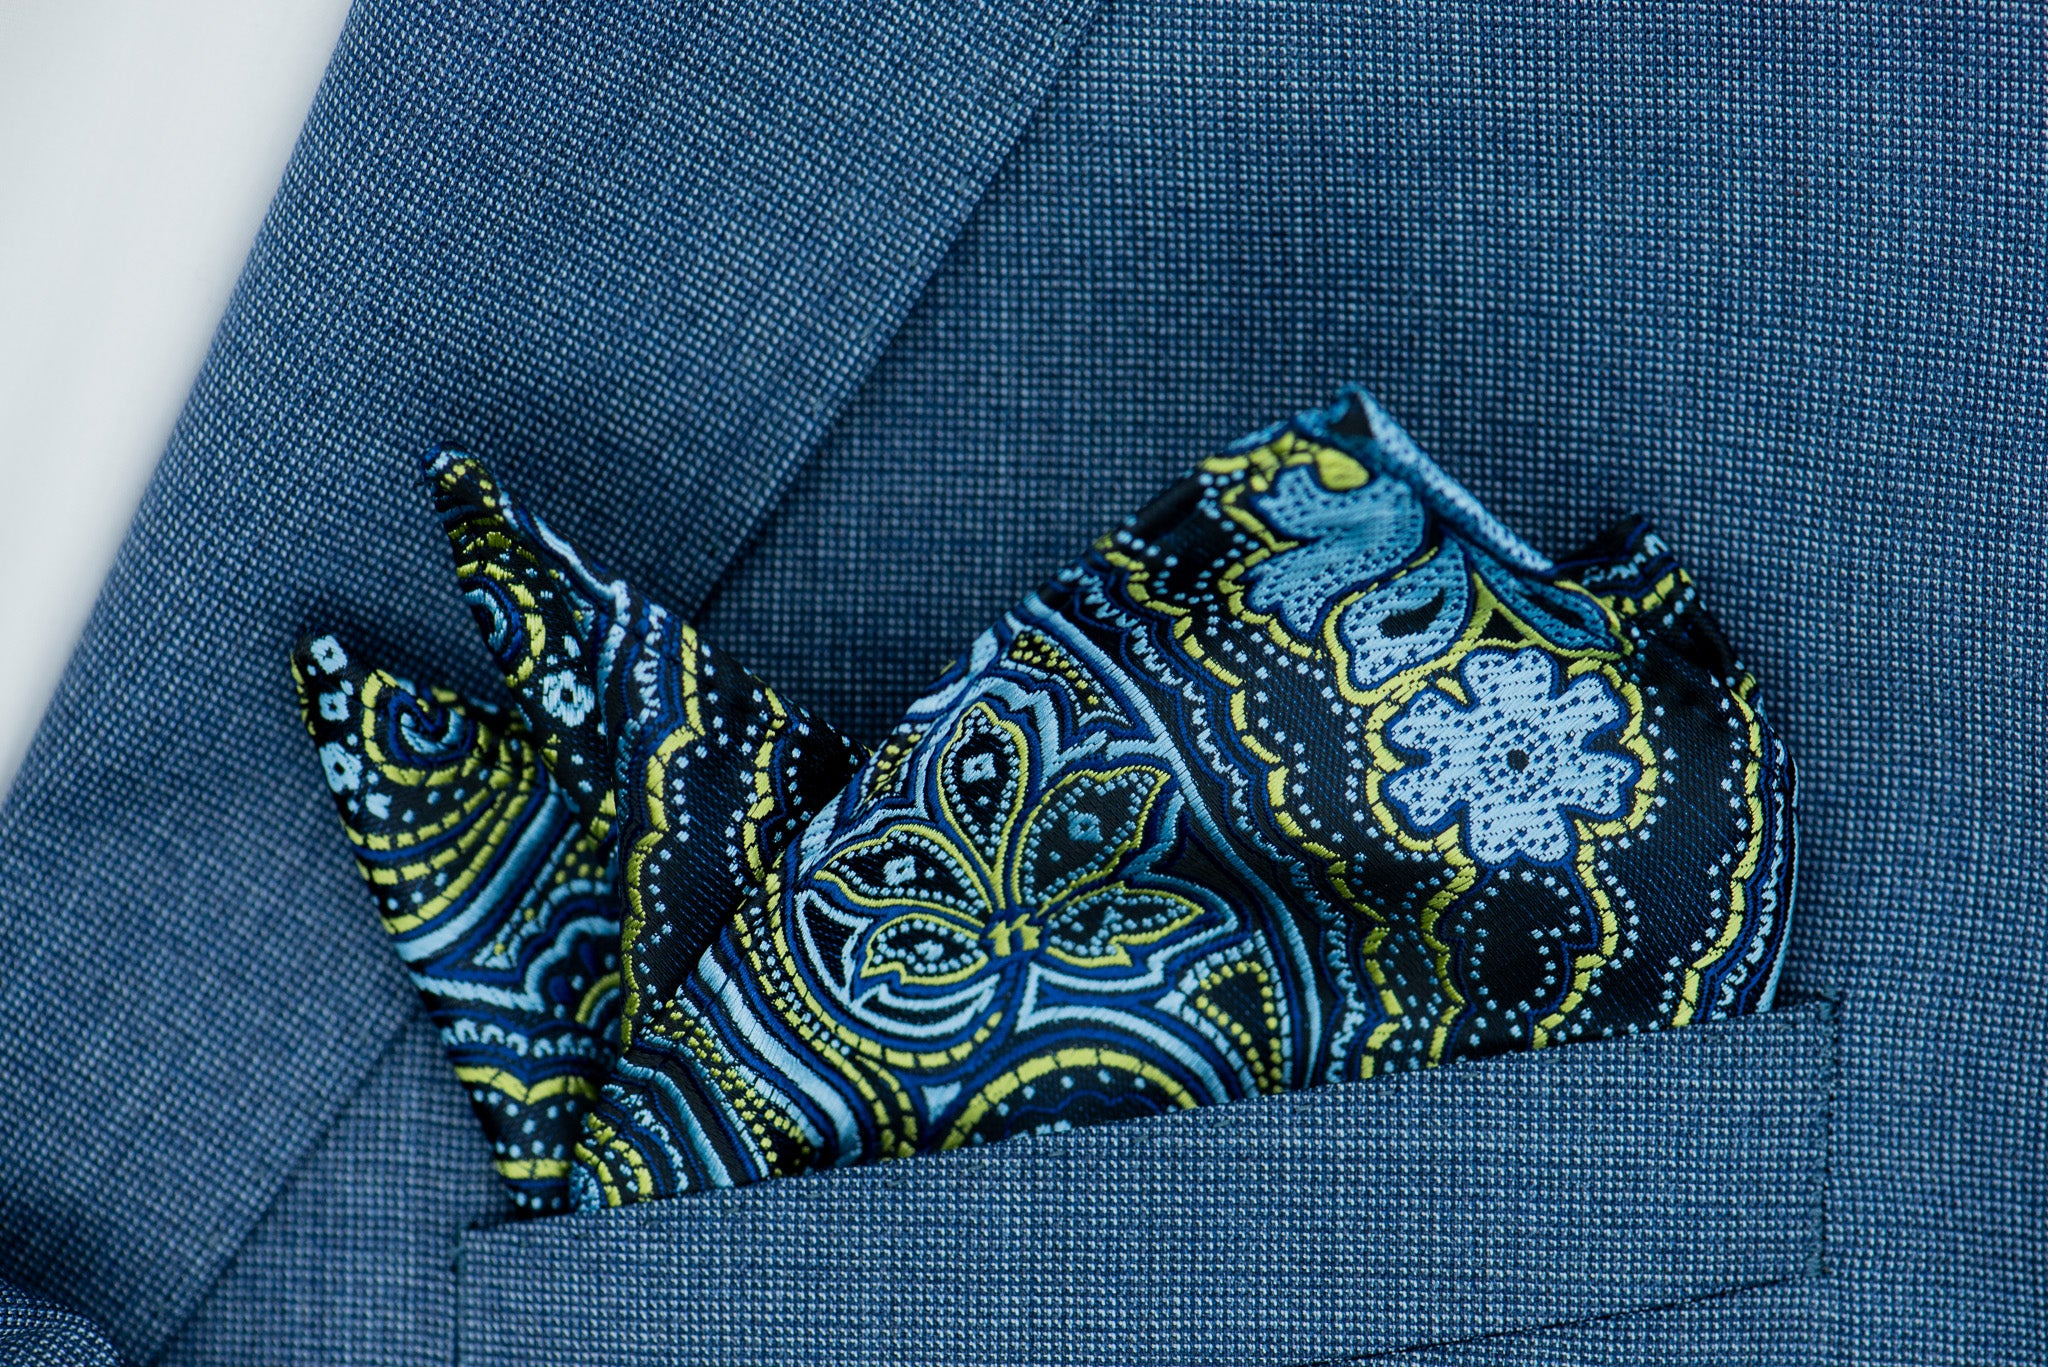 Silk Pocket Square - Black background, sky blue patterns, yellow lime patterns